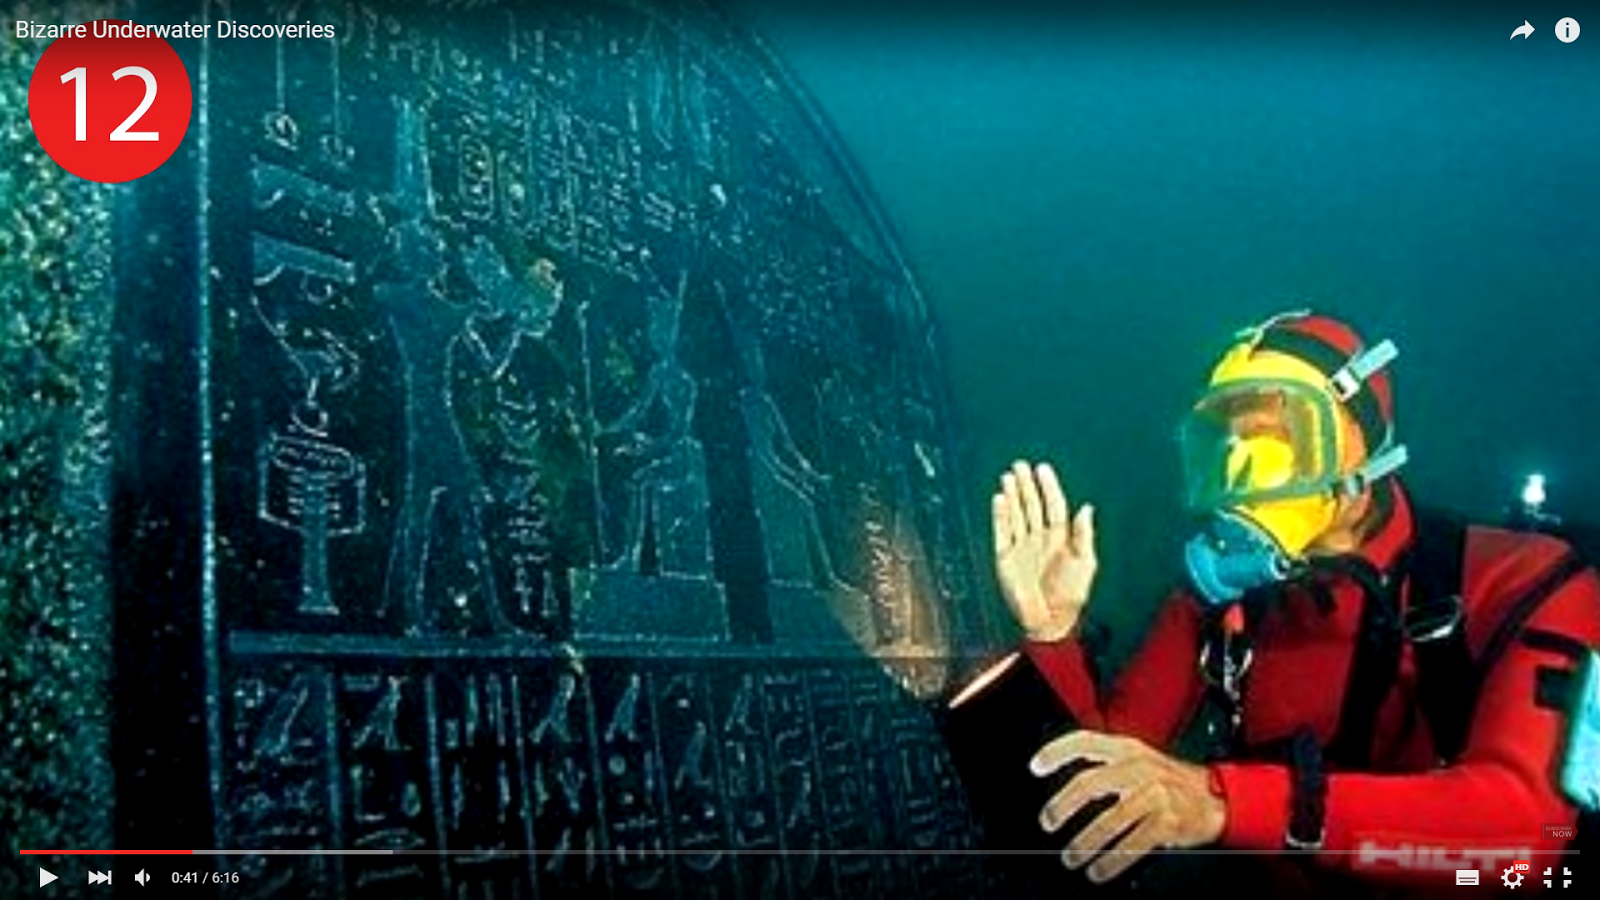 12. The Lost City of Hearacleion